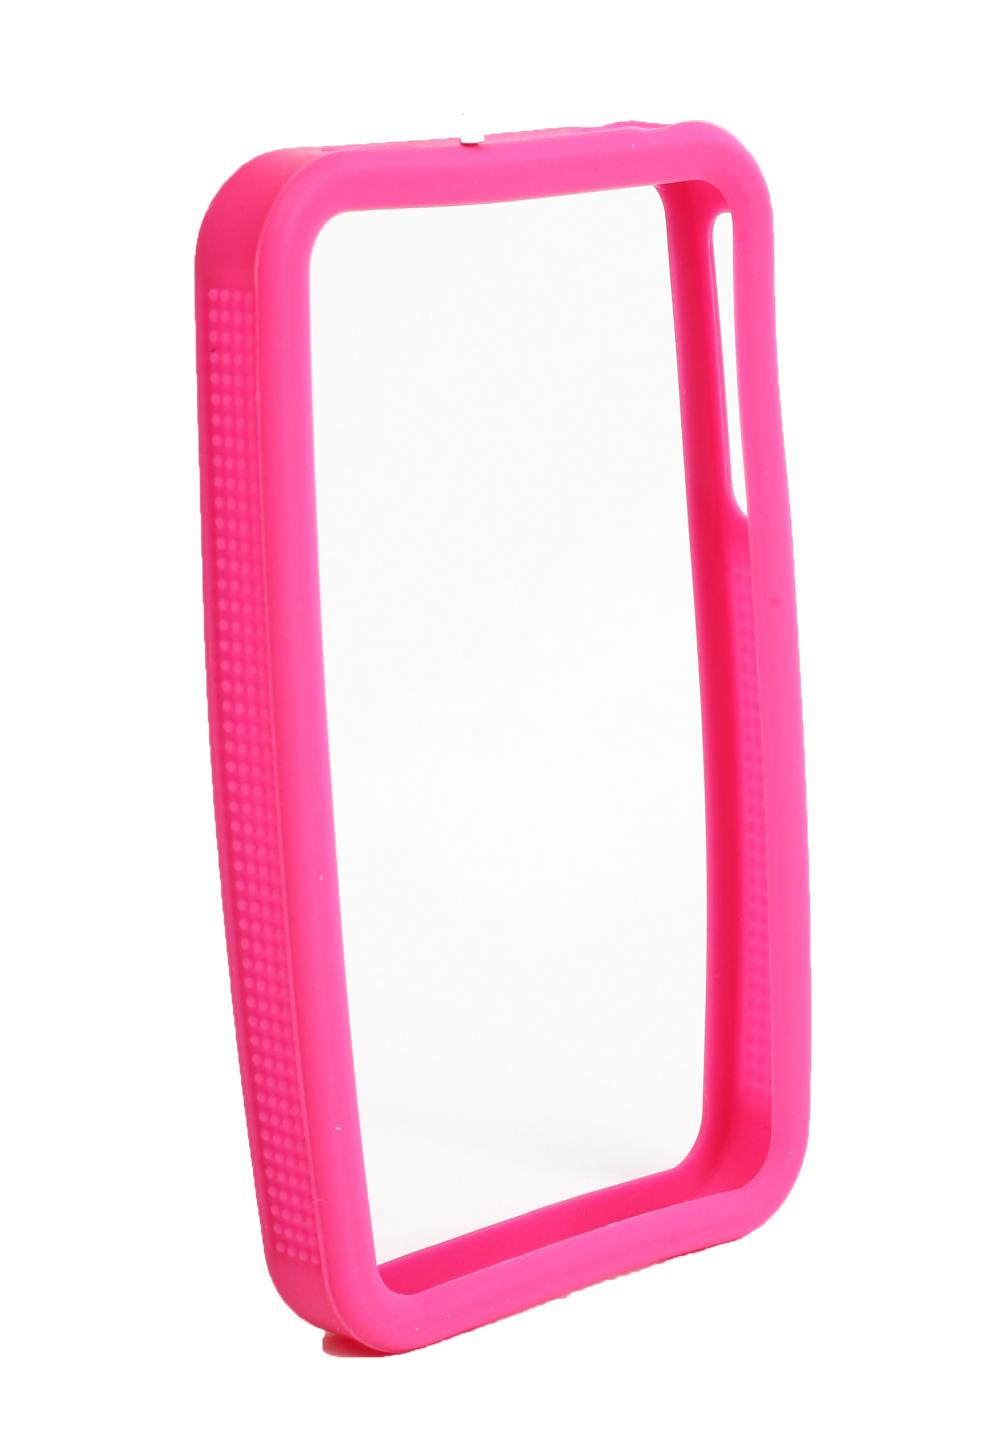 IMPECCA IPS225 Secure Grip Rubber Bumper Frame for iPhone 4GS= - Pink